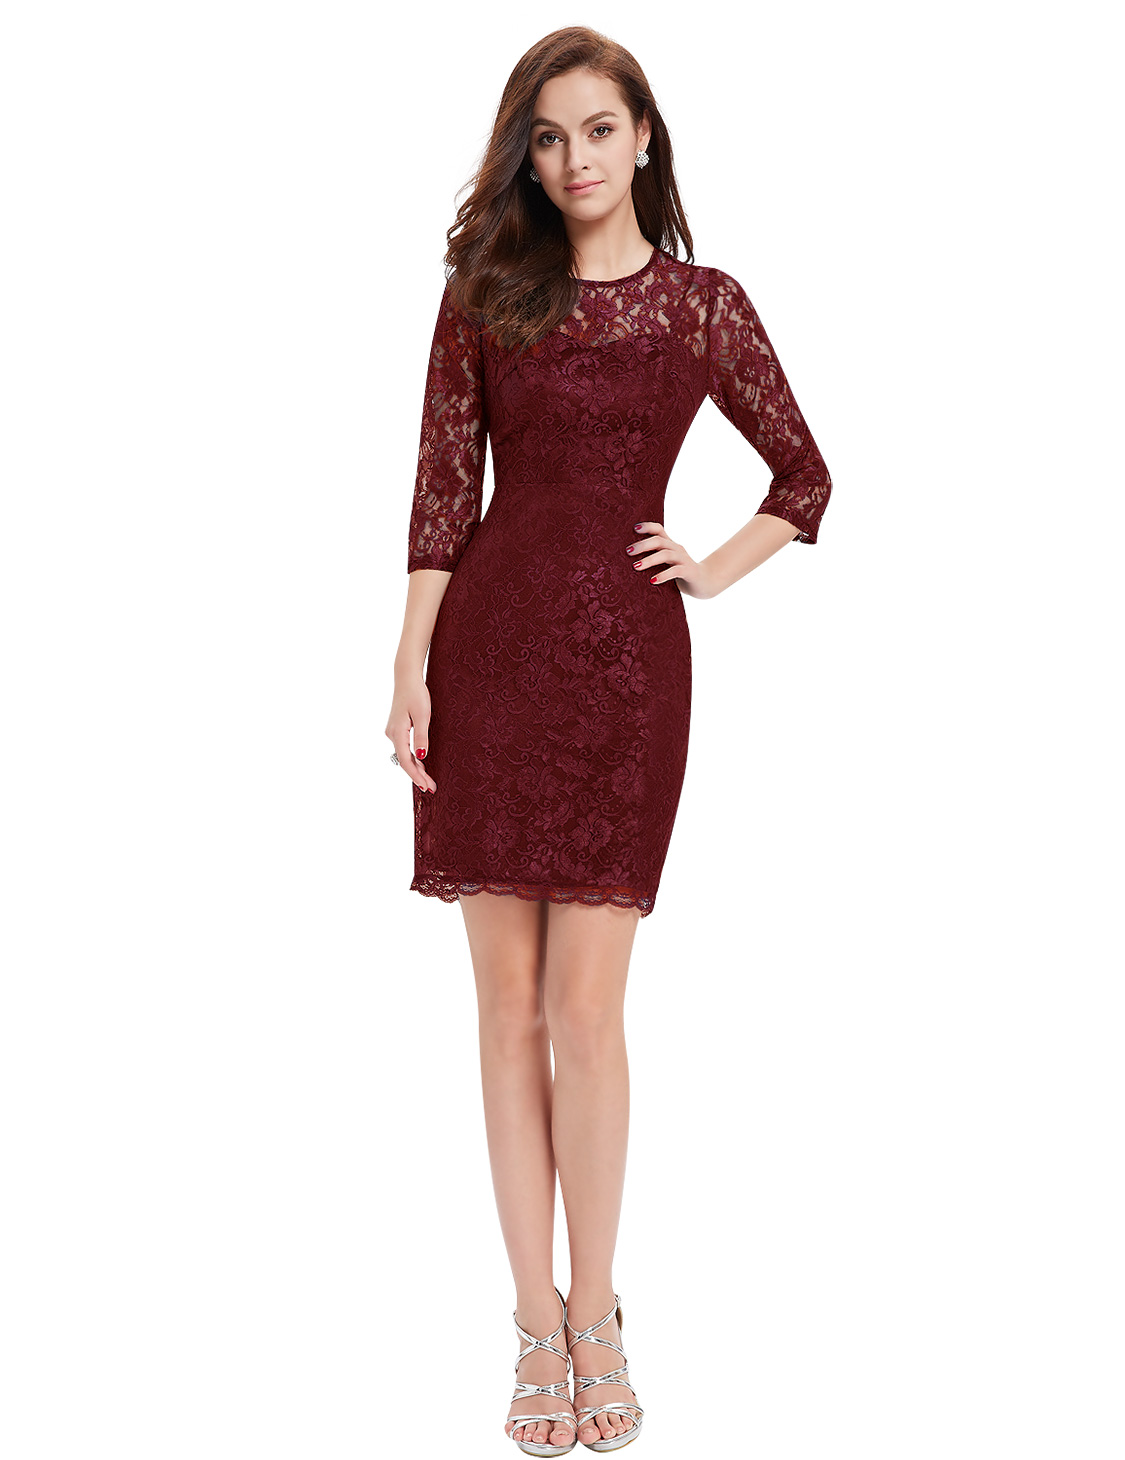 Ever-Pretty Lace Cocktail Dress Women Short Bodycon Evening Party ...